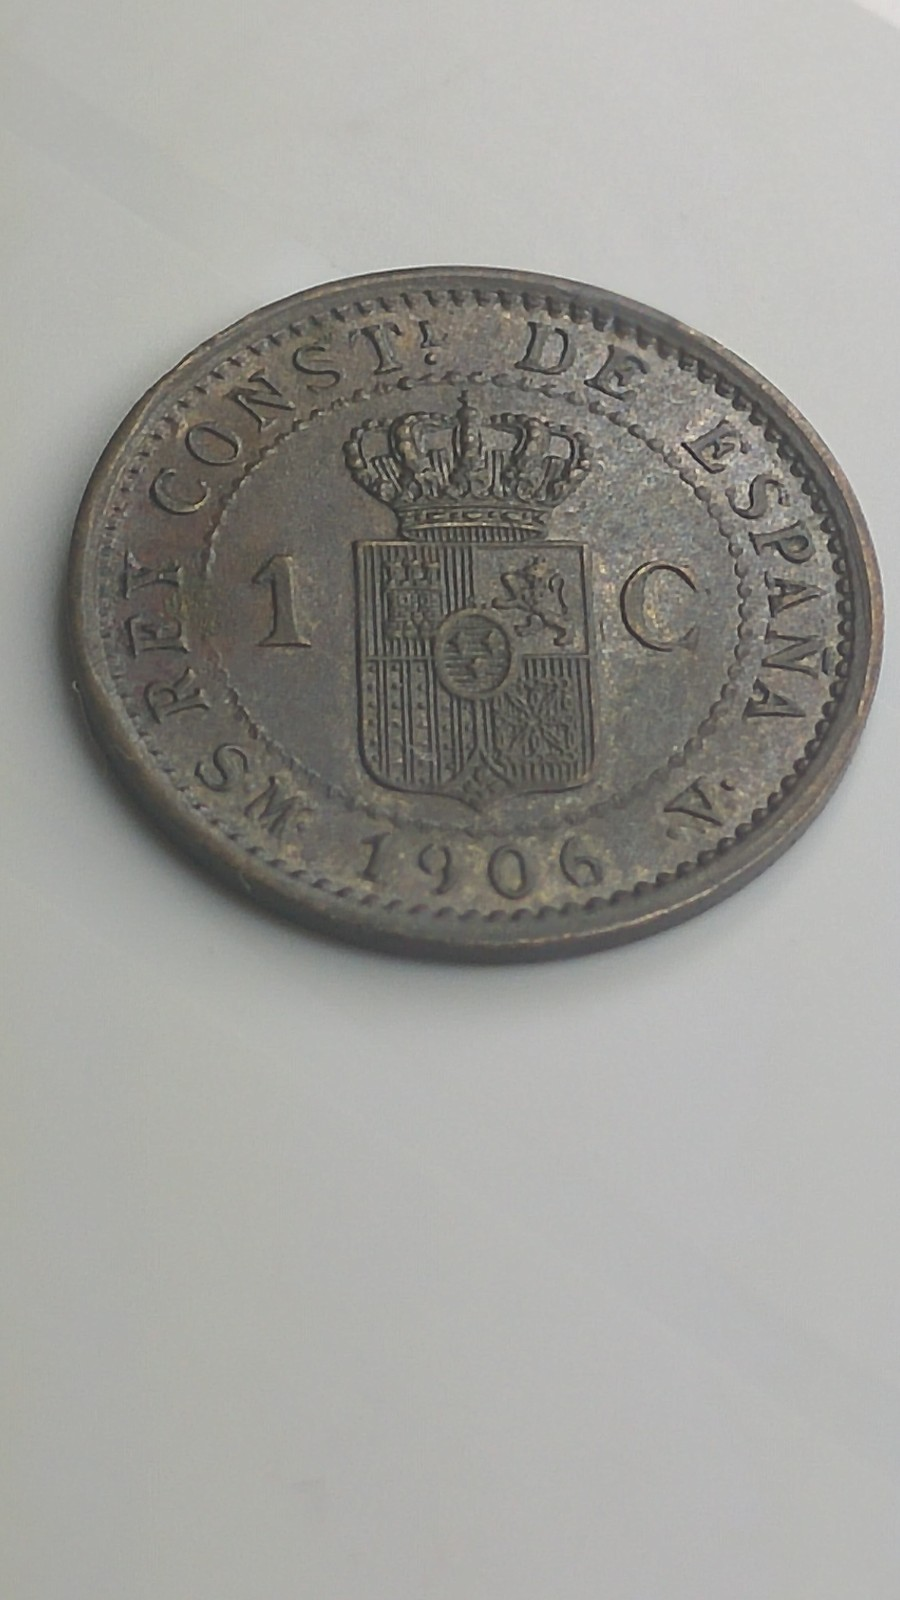 1 céntimo 1906. SMV. Alfonso XIII R8gy93